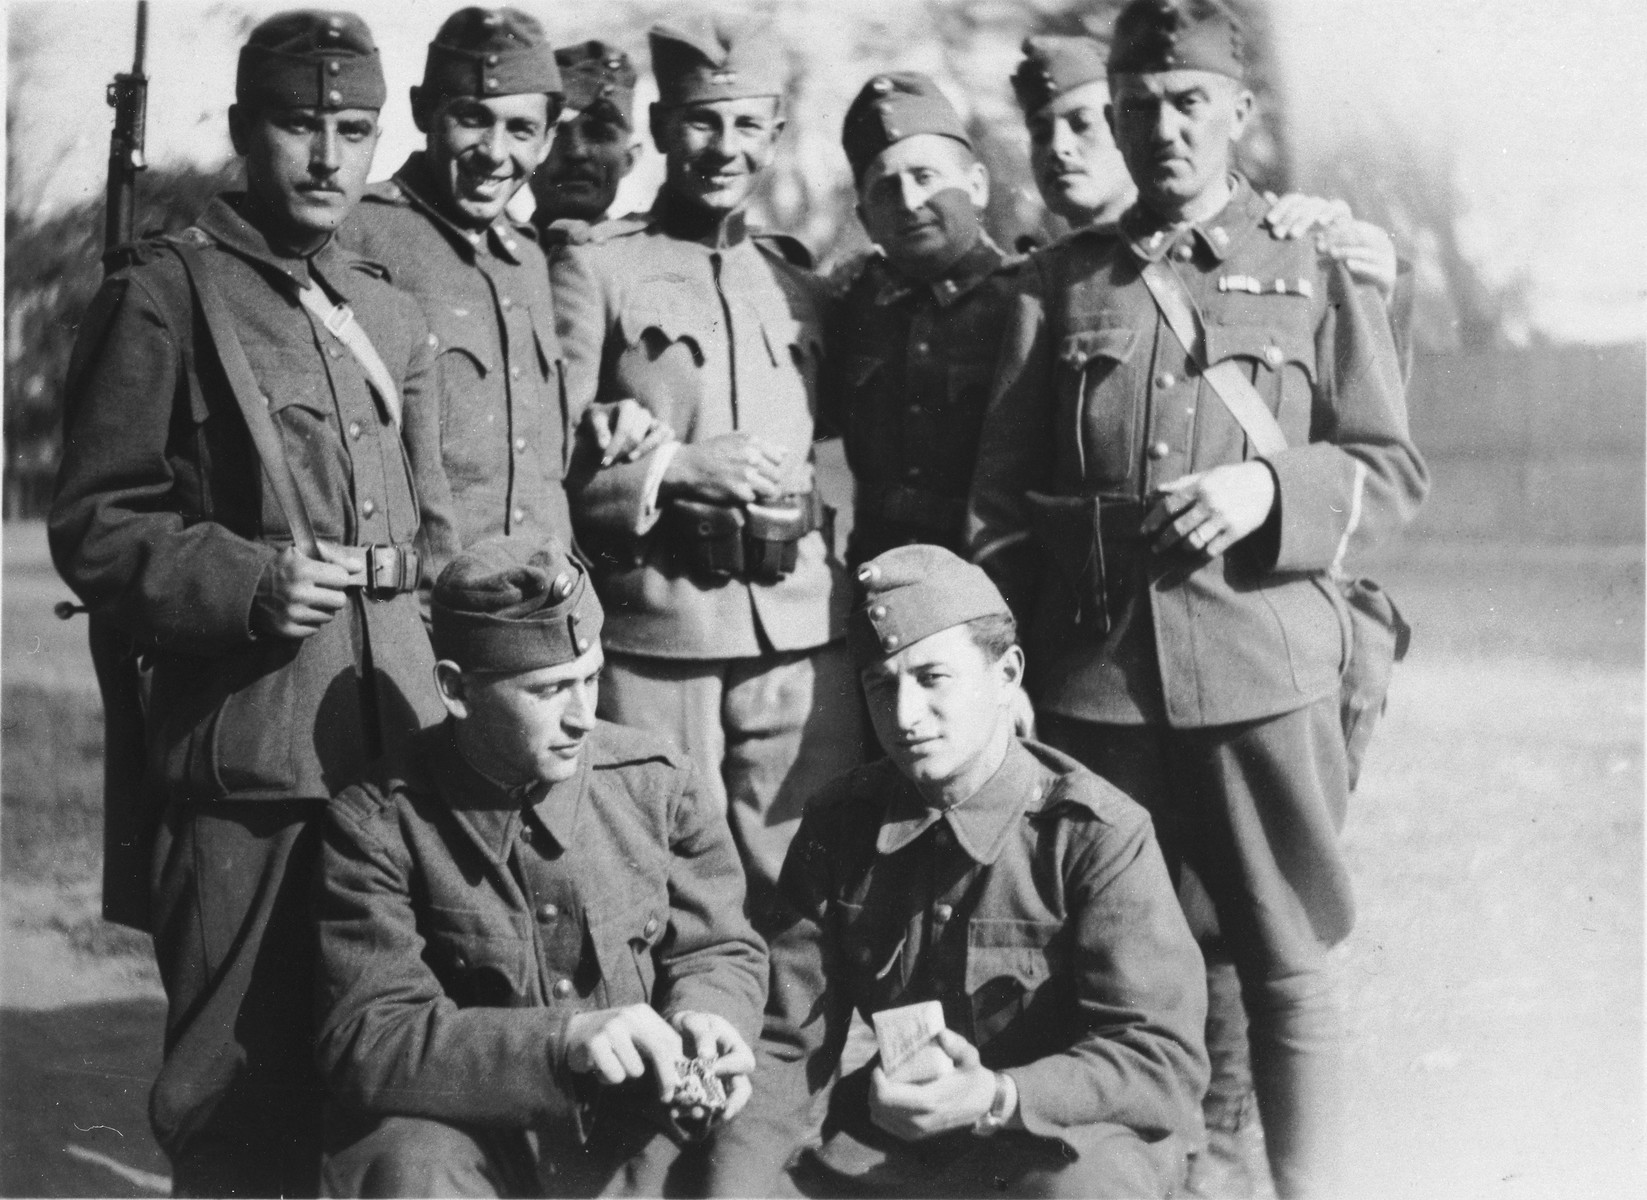 Group portrait of former Jewish soldiers now conscripted into a Hungarian forced labor battalion.  Jeno Lebowiz is pictured in the front, right corner.